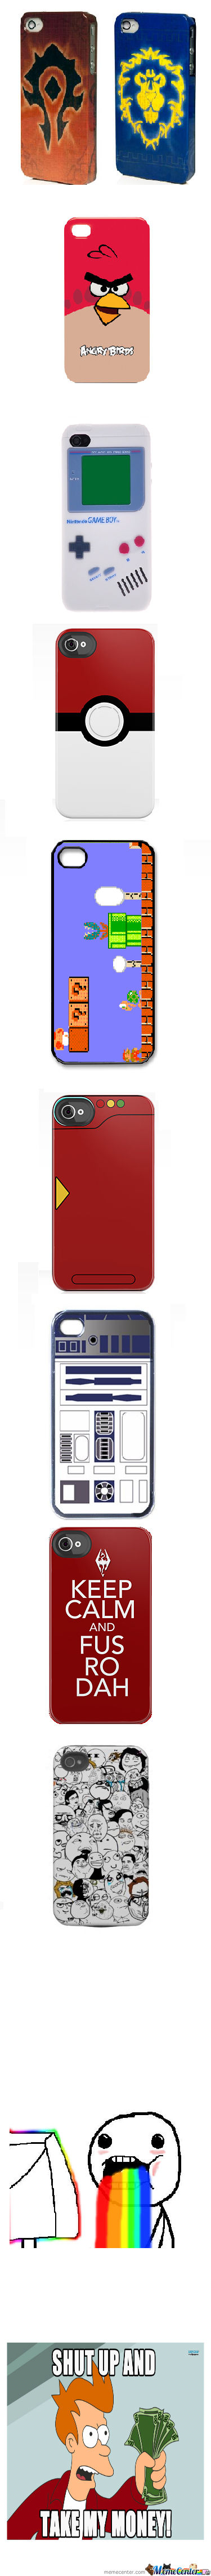 [RMX] Awesome Iphone Cases